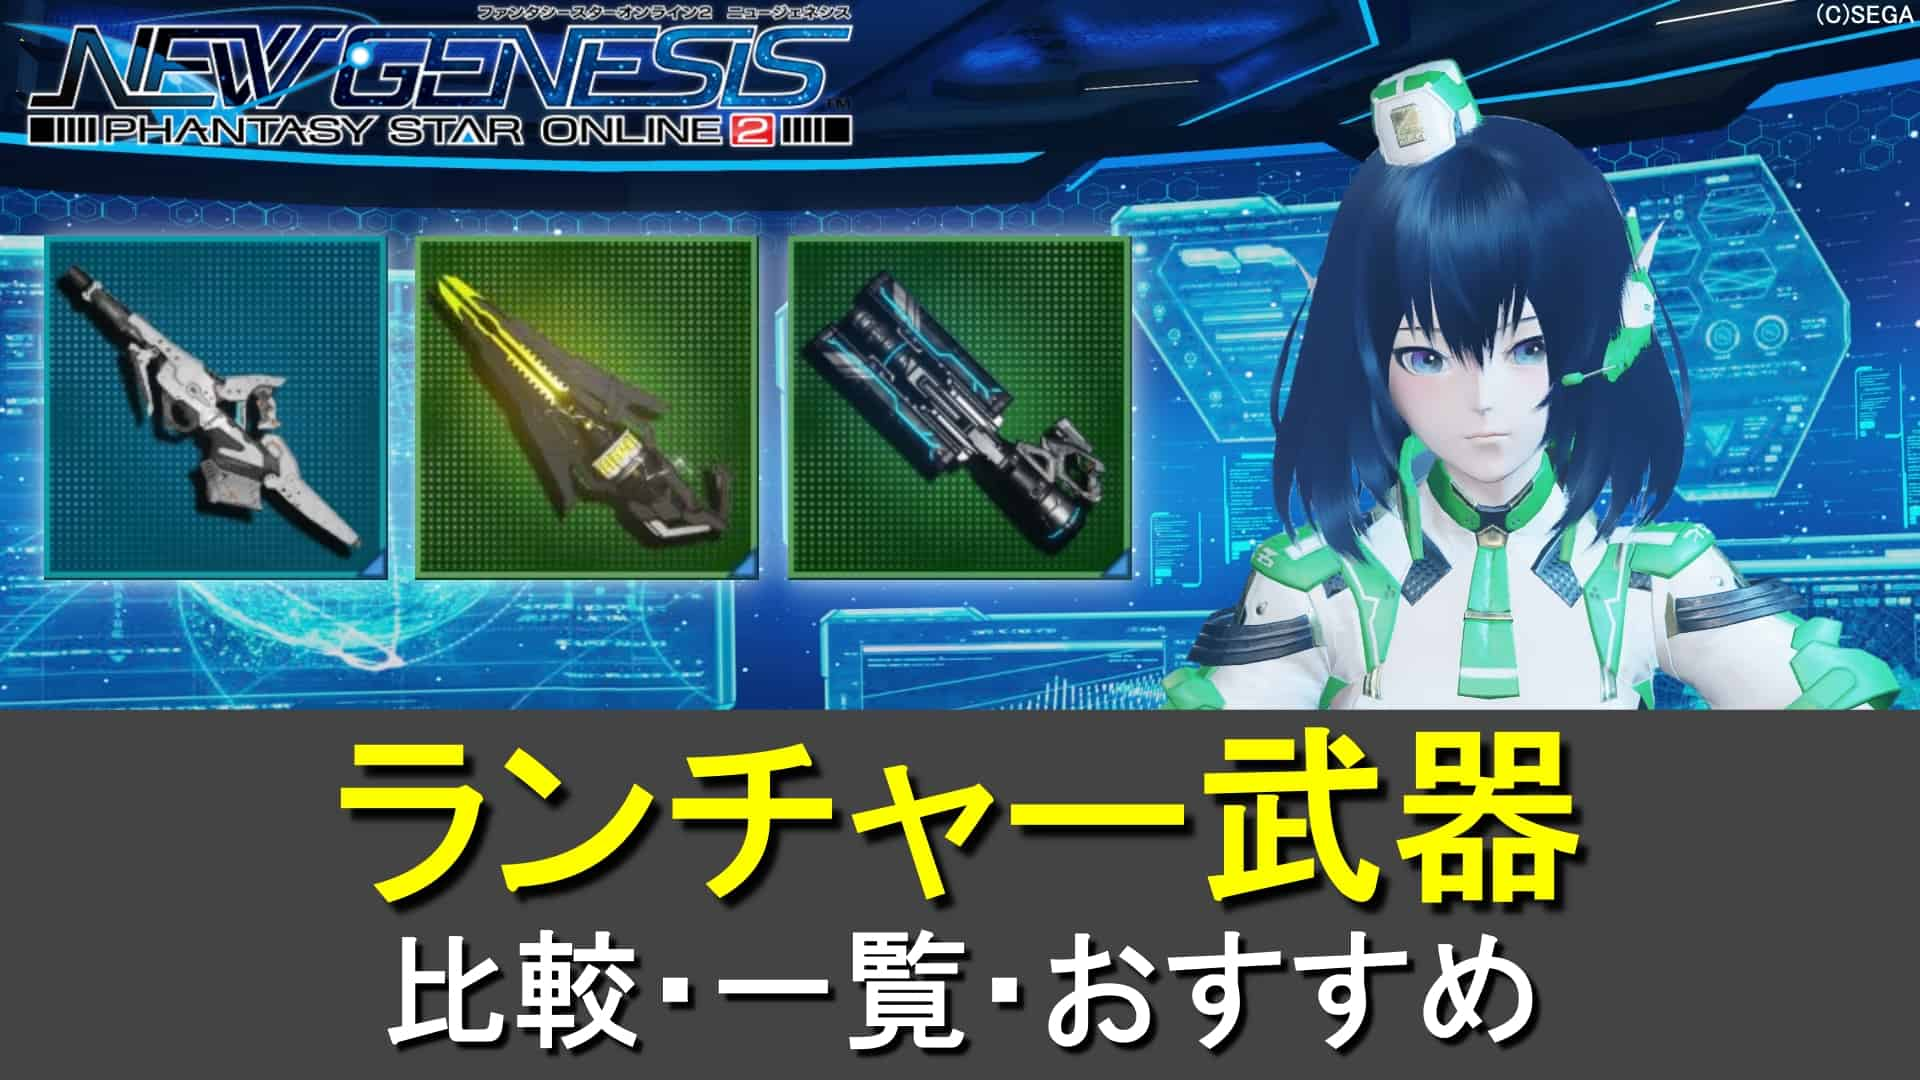 【PSO2NGS】ランチャー武器の一覧、潜在まとめ